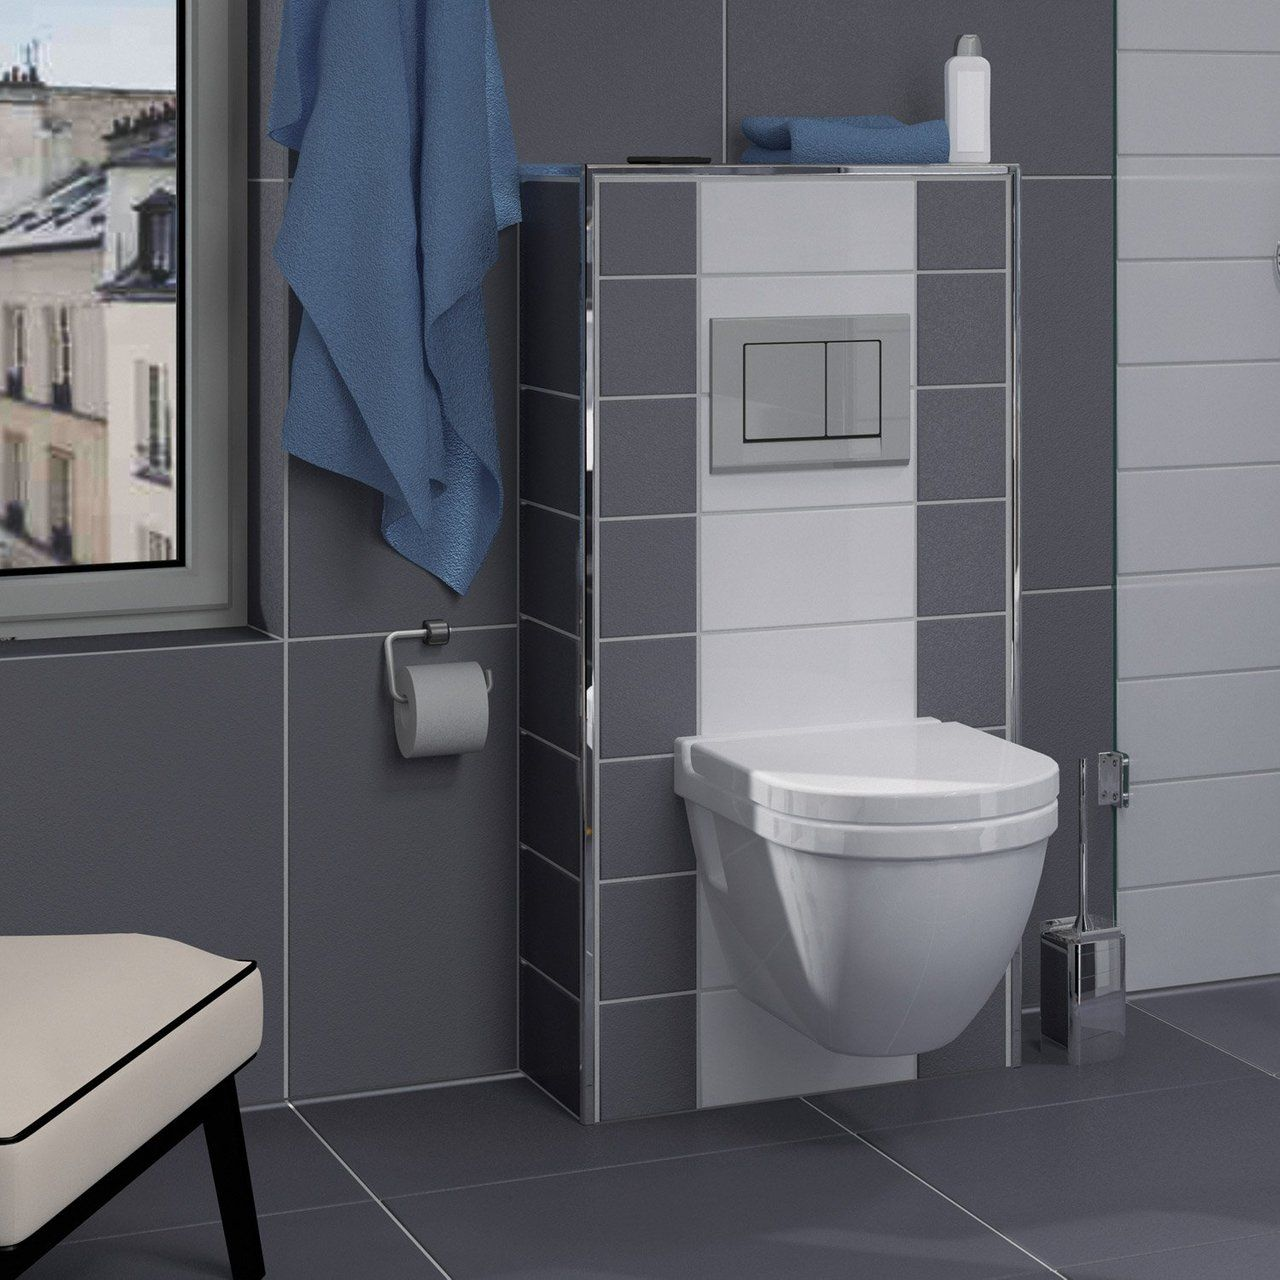 Habillage Wc Suspendu Grohe Leroy Merlin Pack Wc Suspendu Bâti Mur Geberit Symbiose Leroy Merlin